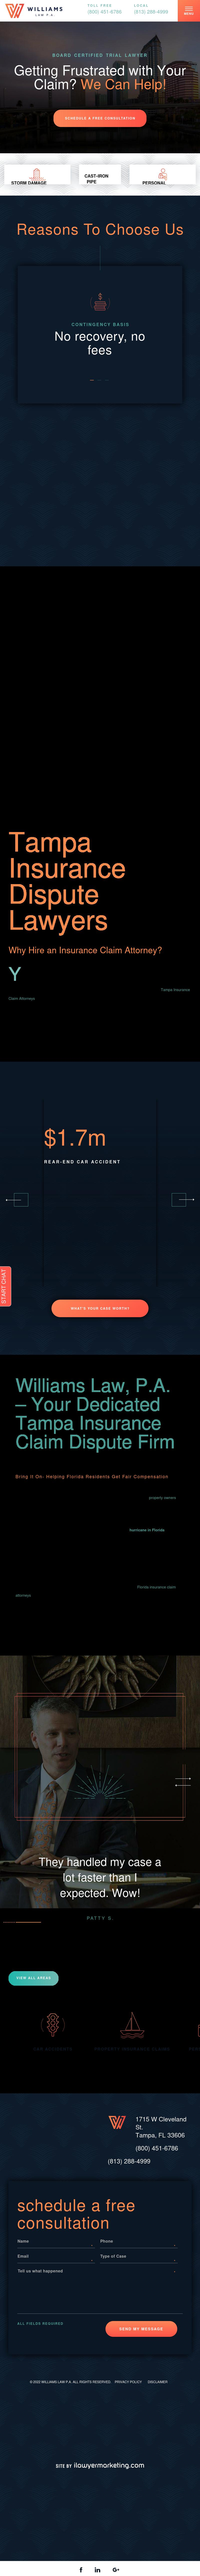 Williams Law, P.A. - Tampa FL Lawyers